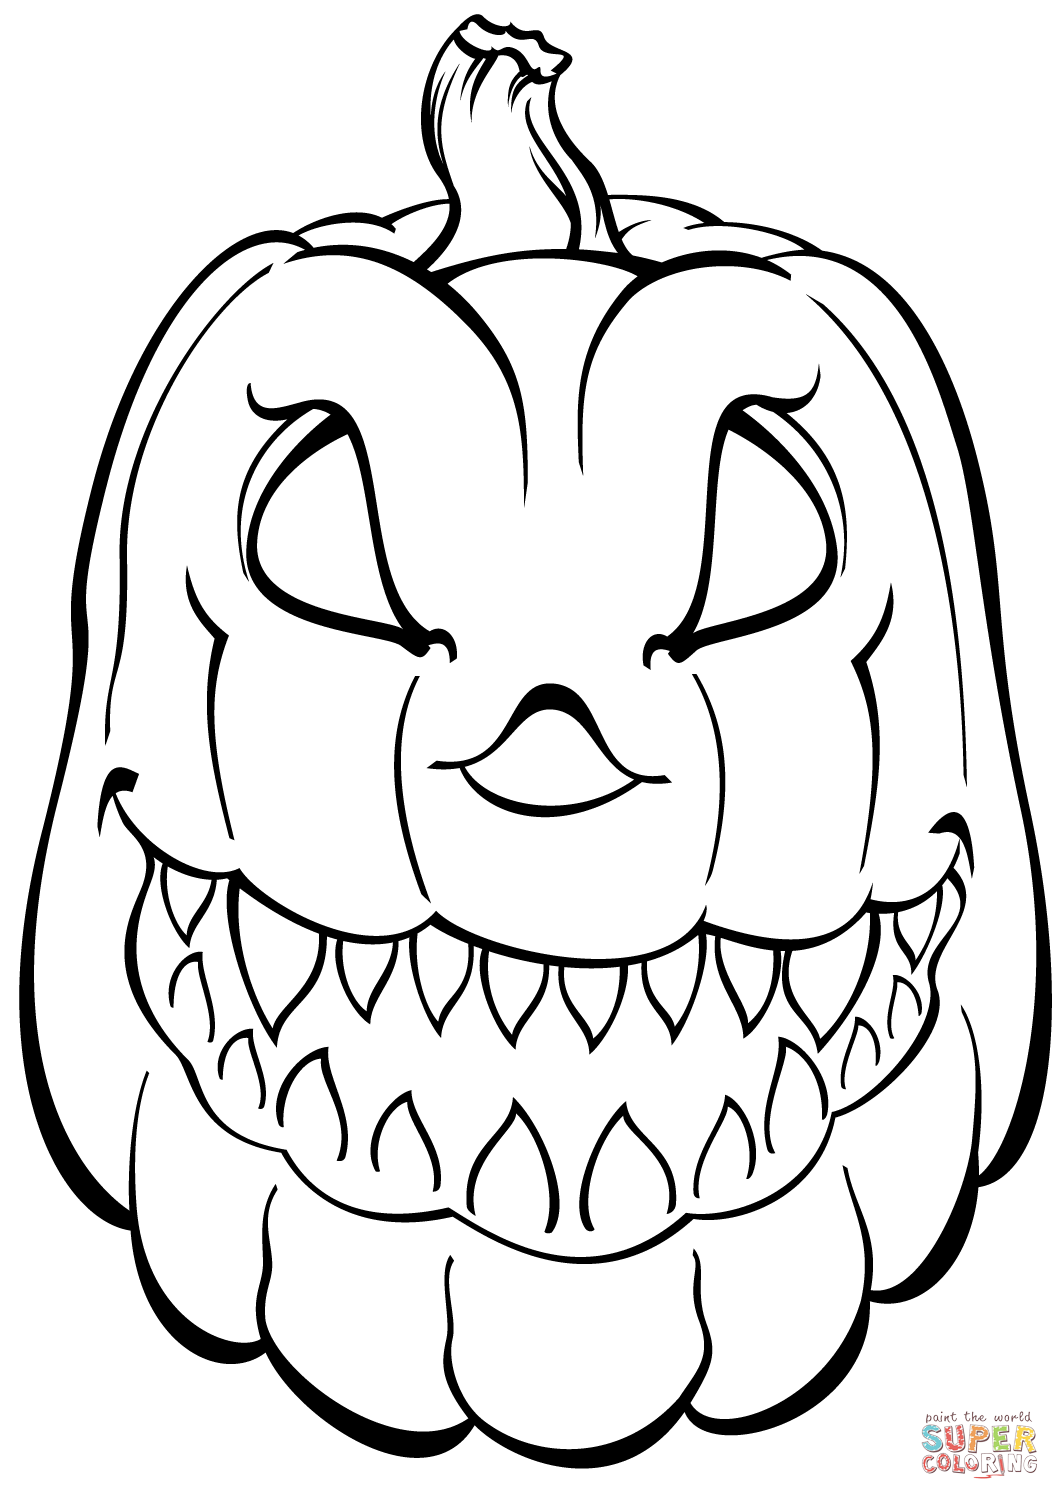 halloween pictures to color pumpkin coloring pages halloween coloring pages fall coloring to pictures pumpkin halloween color